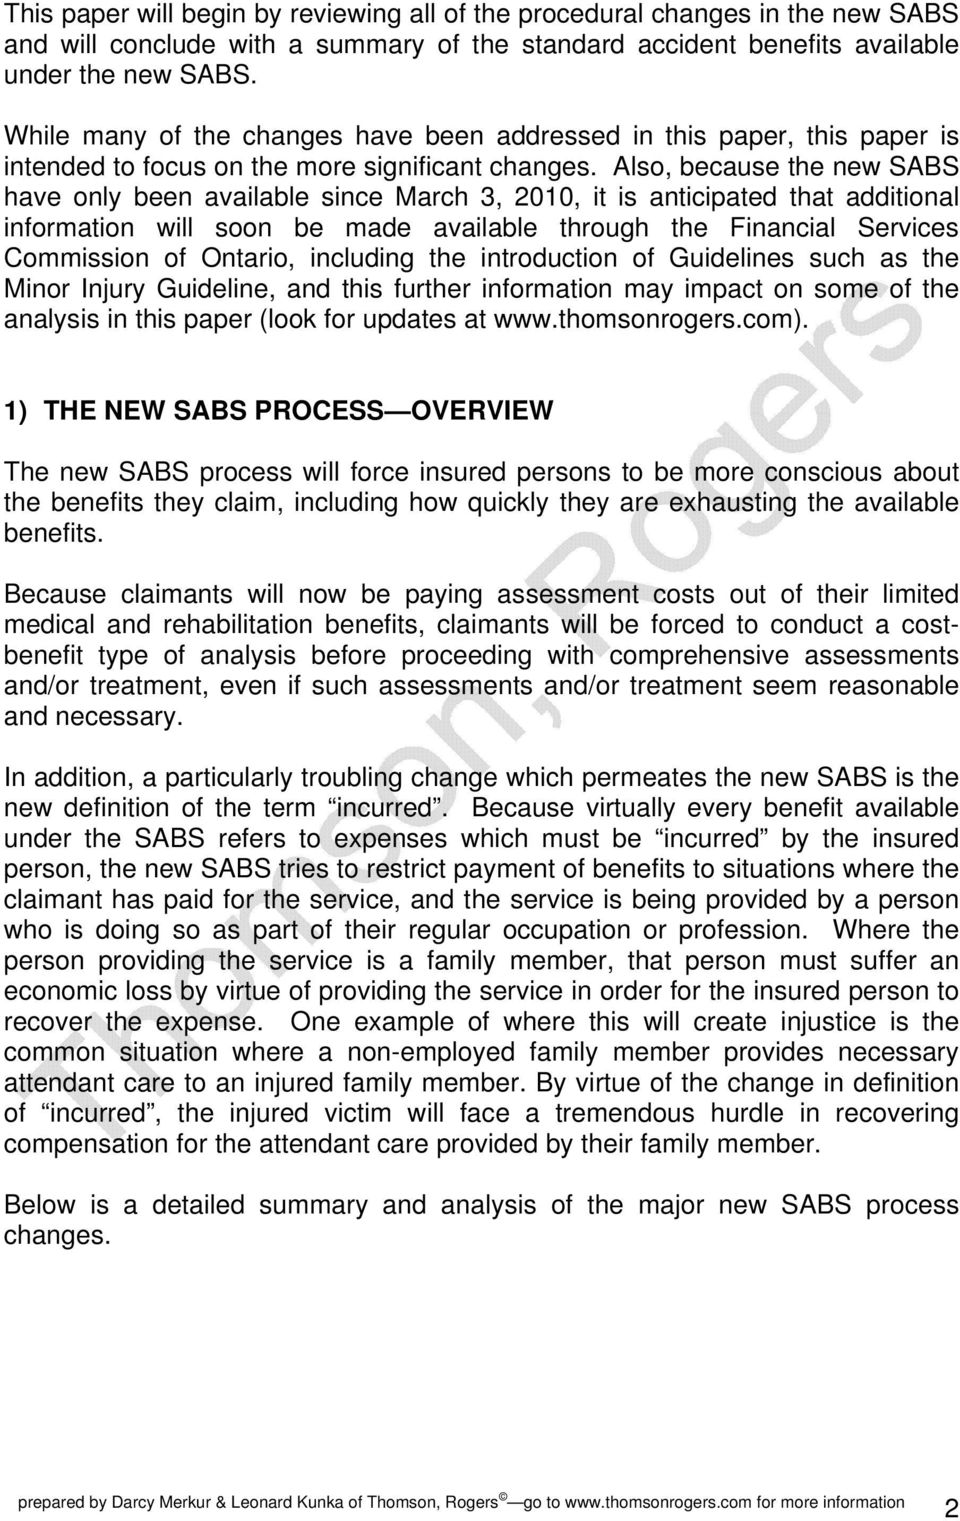 Also, because the new SABS have only been available since March 3, 2010, it is anticipated that additional information will soon be made available through the Financial Services Commission of